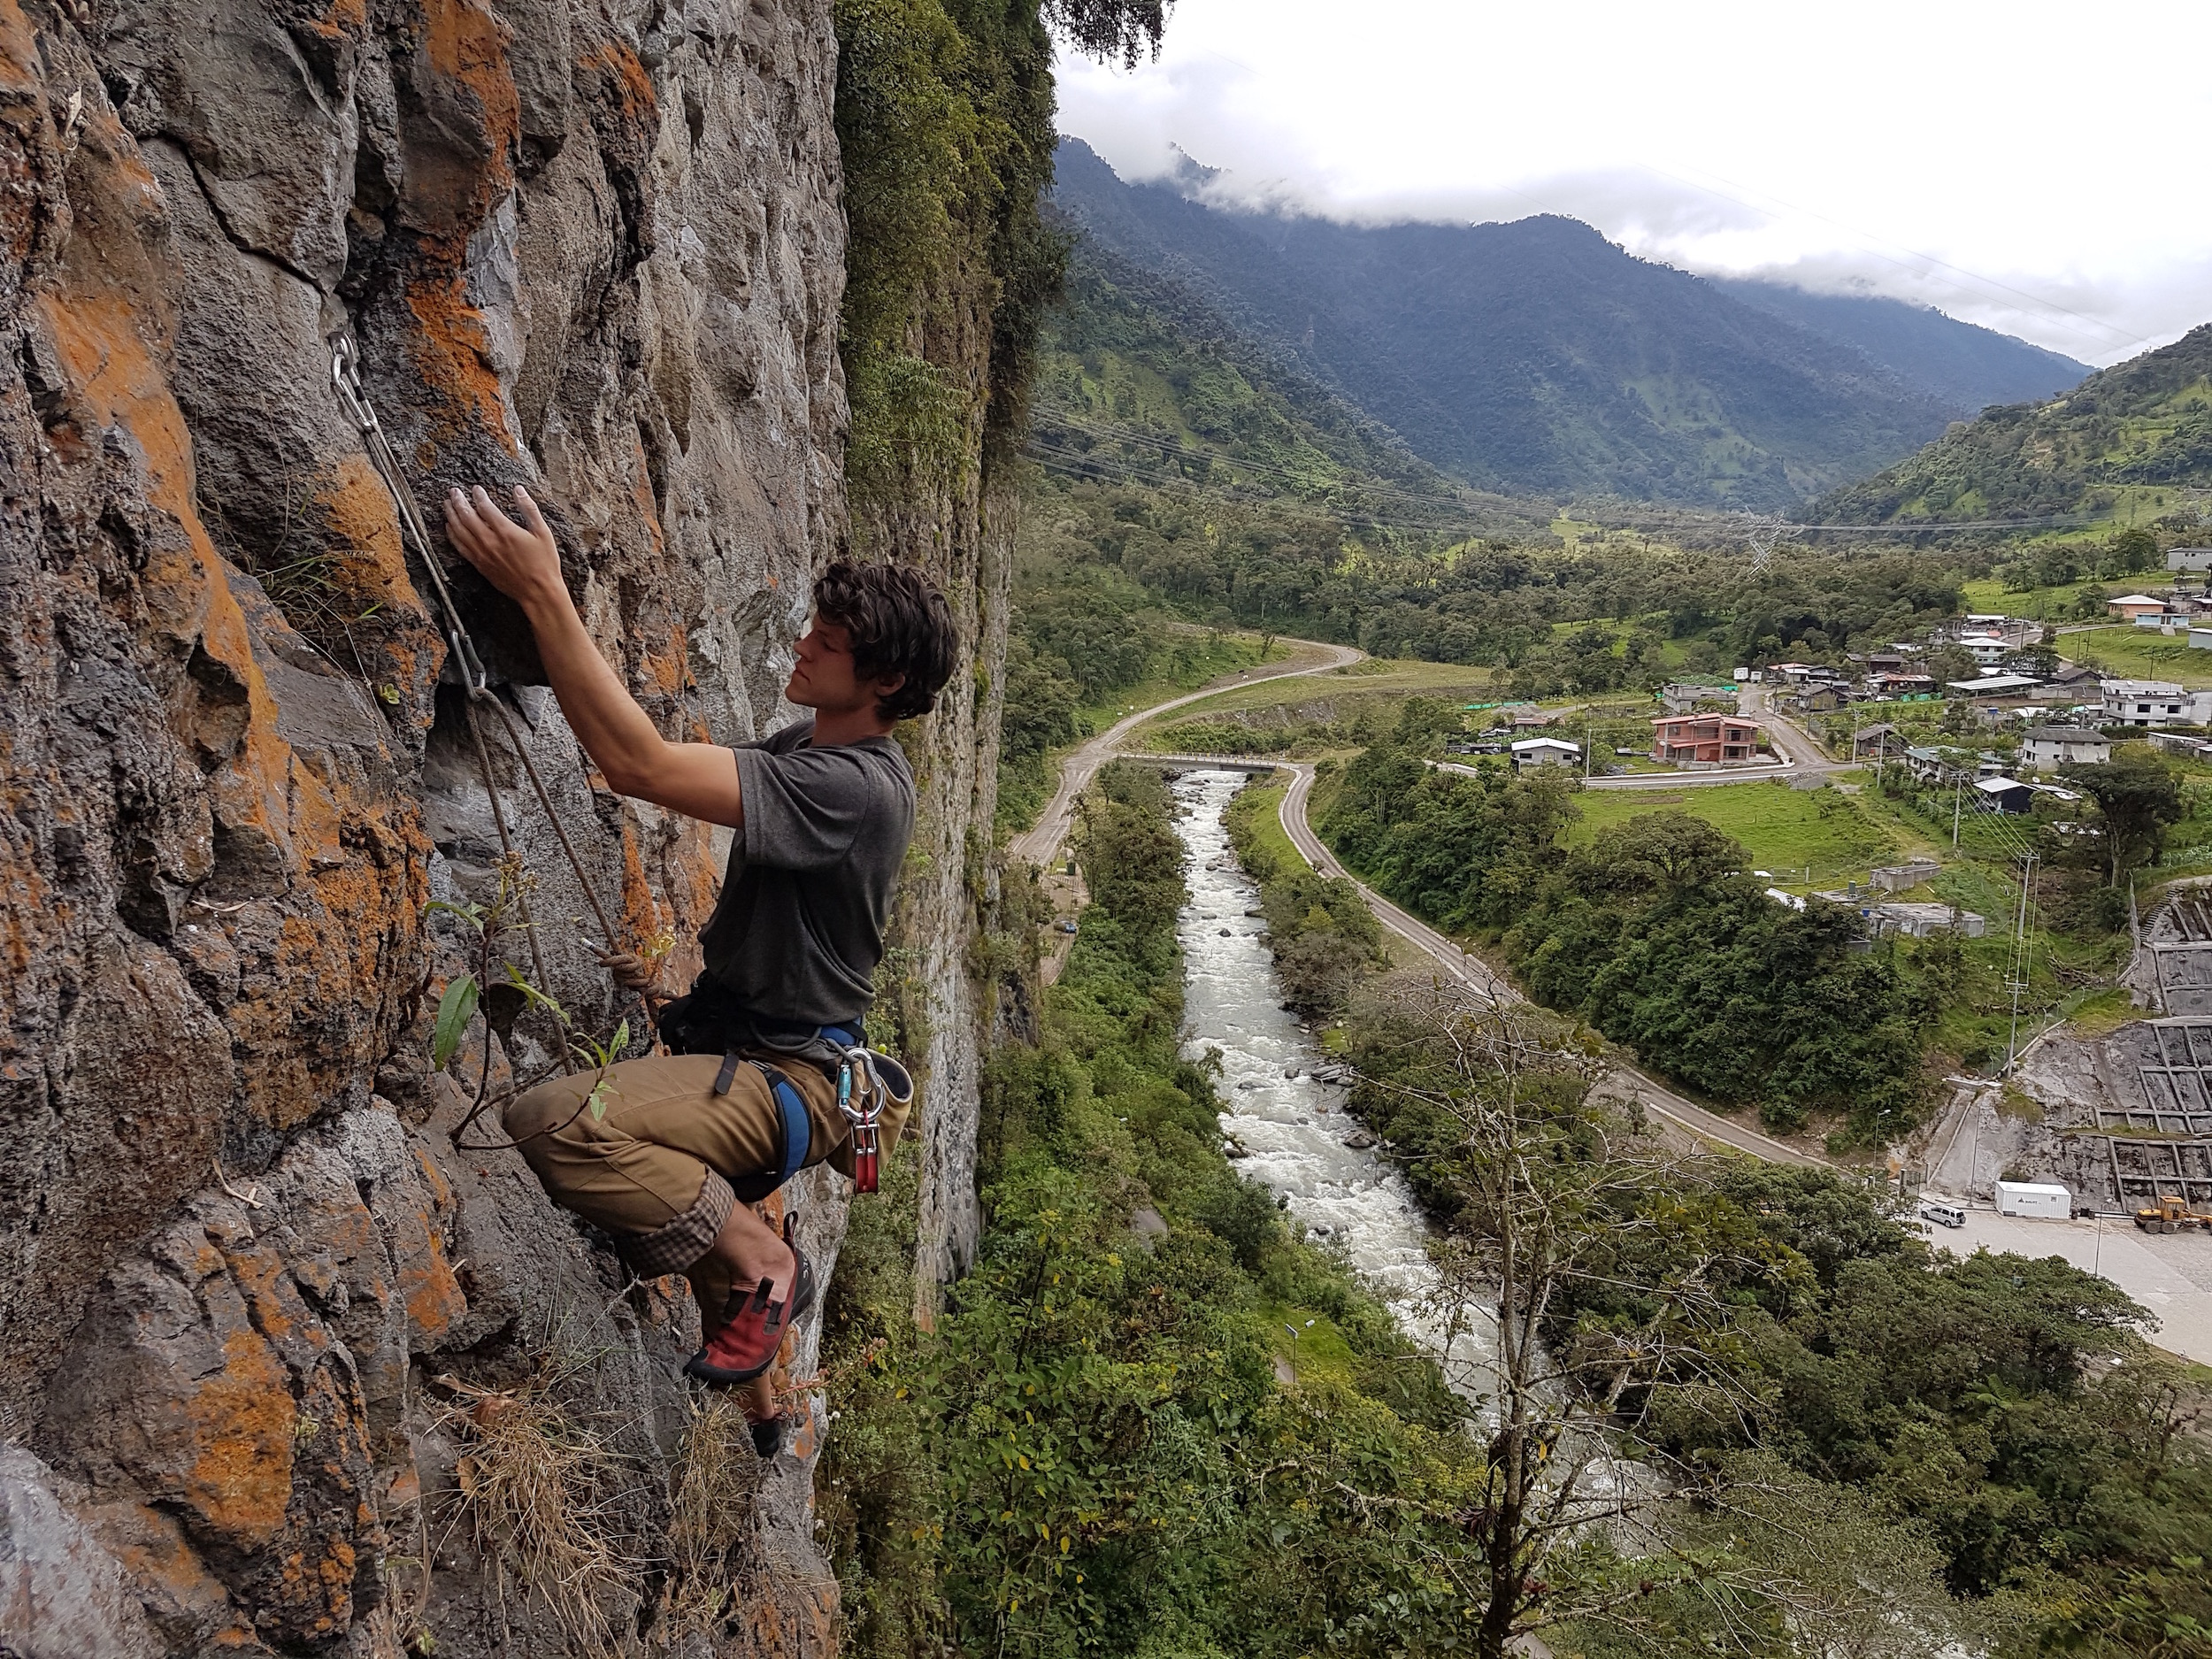 Rock Climbing in Ecuador – 3 of the Best Places to Climb Near Quito